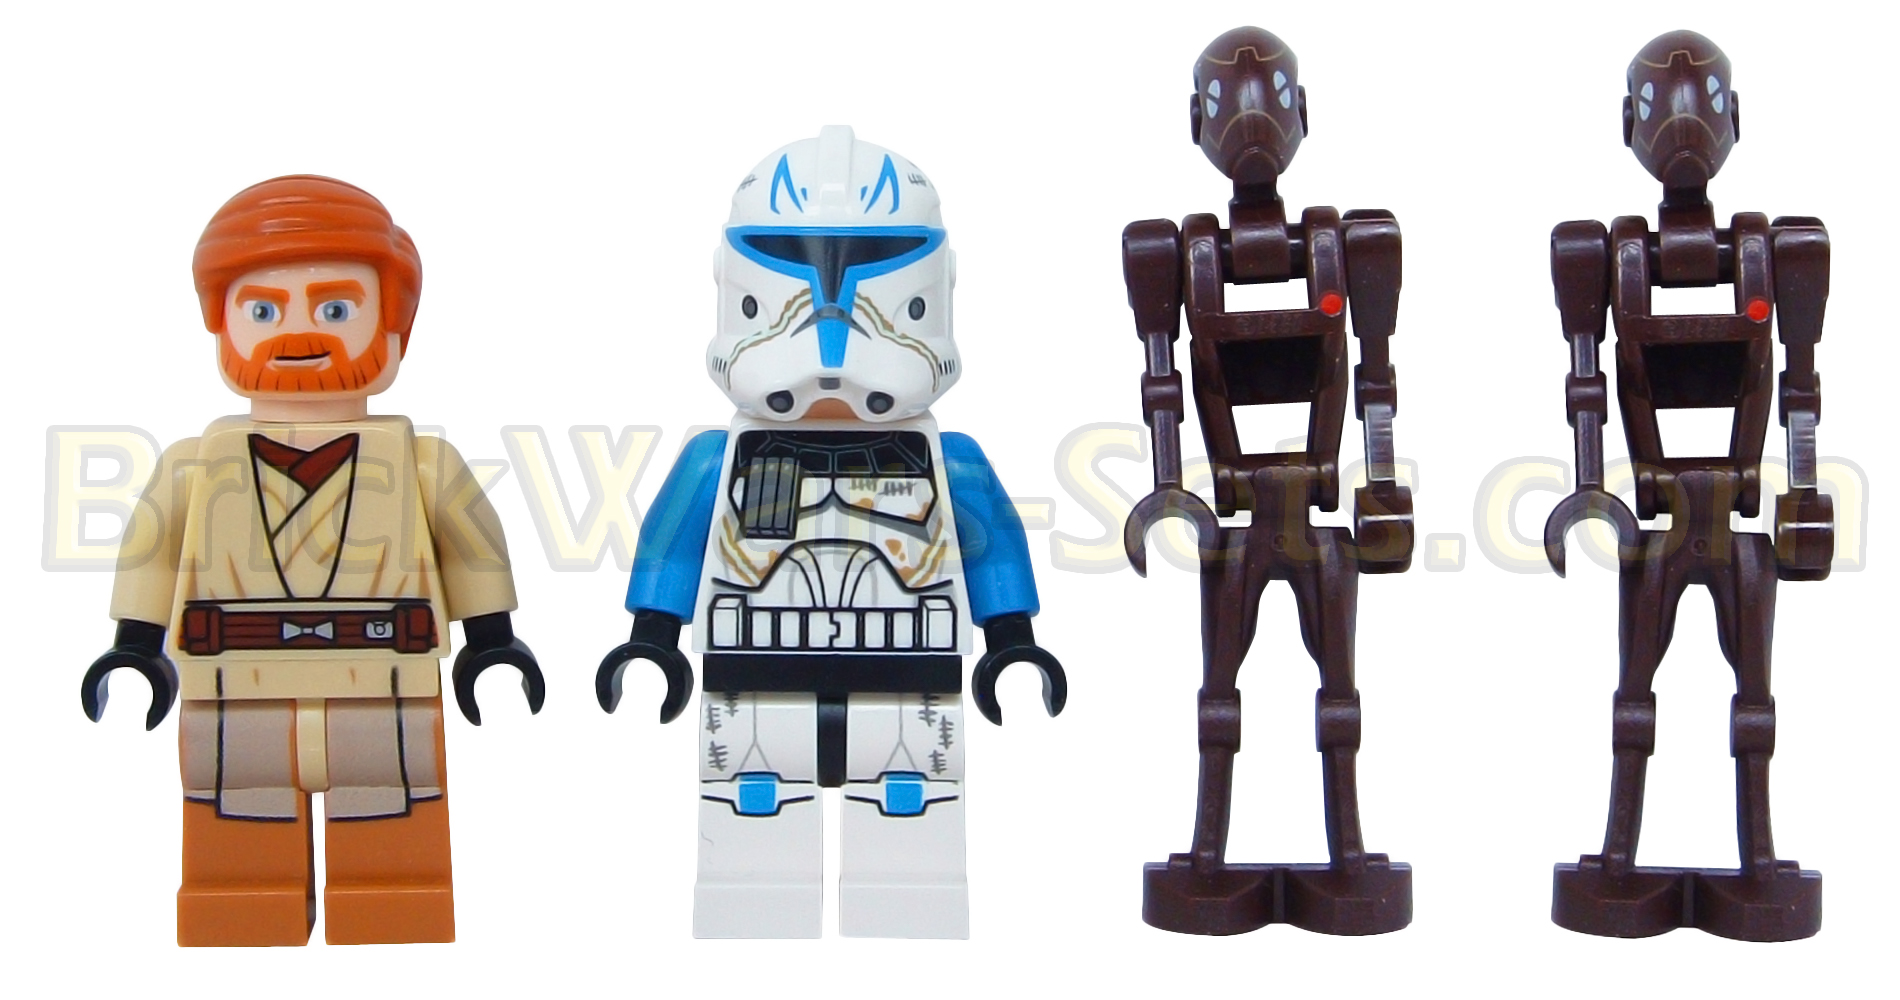 Lego 75012 barc speeder with sidecar minifigures front review lego 75135 obi wans jedi interceptor episode 3 obiwan lsw3 png stickers star wars